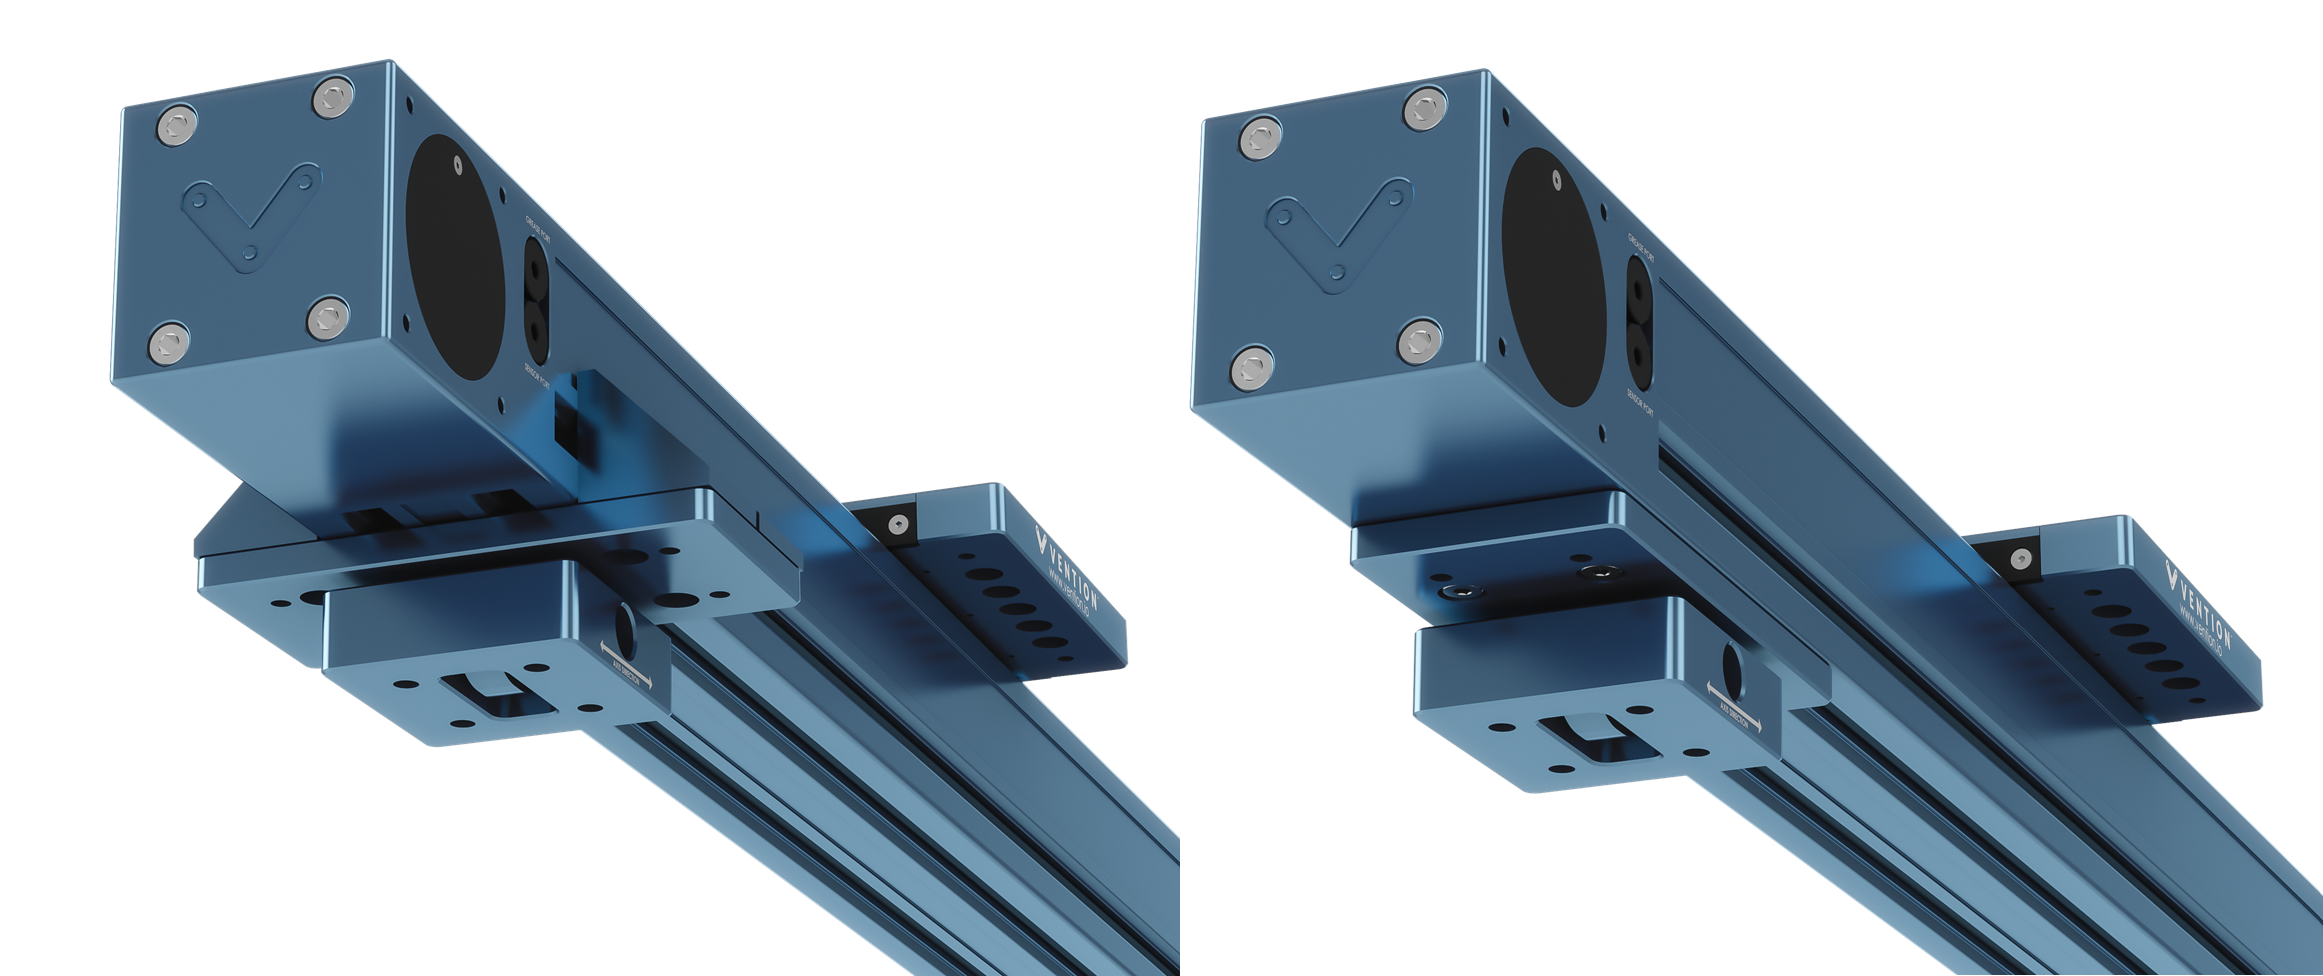 Figure 7: Possible mount orientations for connection to the actuator. Left: Attached to the actuator via ST-GP-003-0001 standard gussets. Right: Attached directly to the actuator via the t-slots on the actuator's underside.